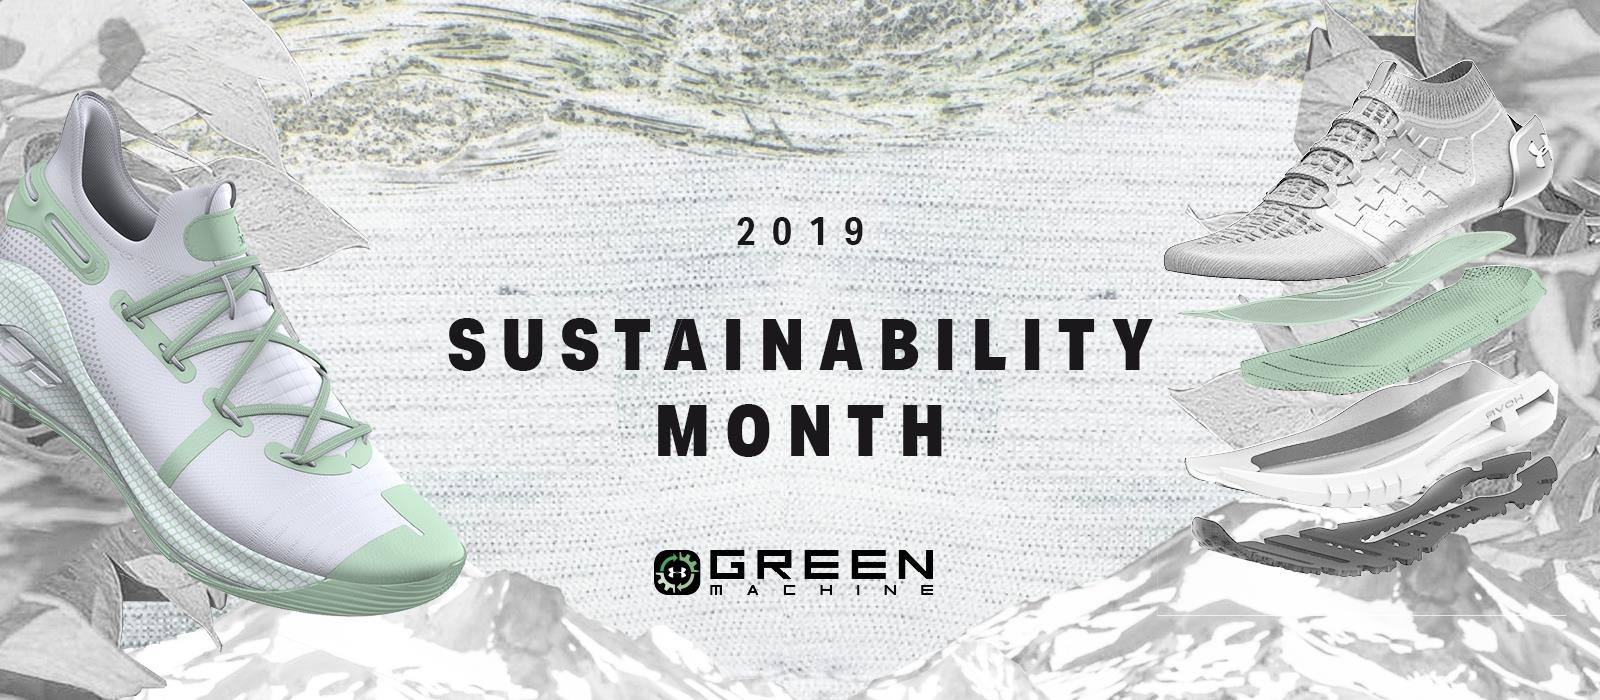 OH_SustainabilityMonth2019.jpg